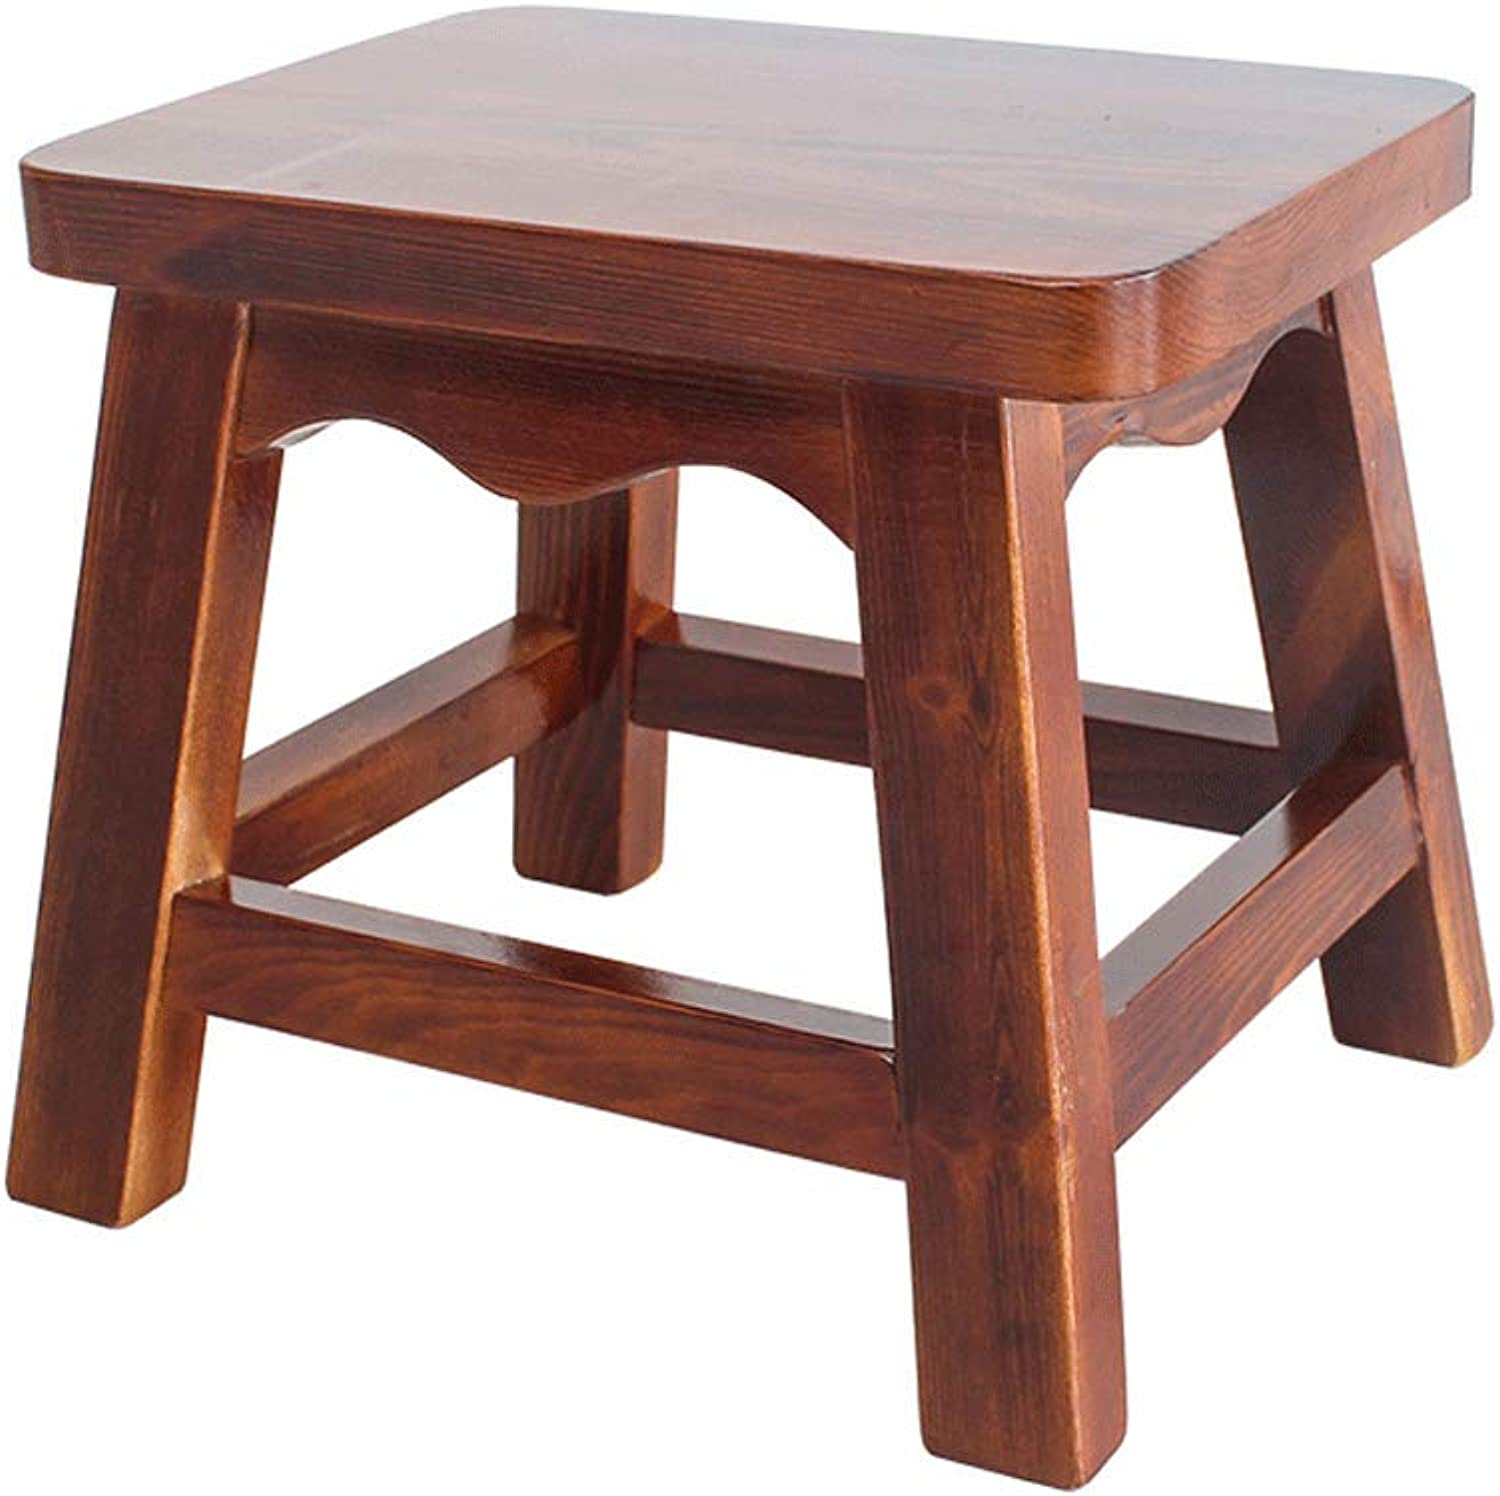 Small Stool Home Solid Wood shoes Bench Modern Fashion Pine Stool